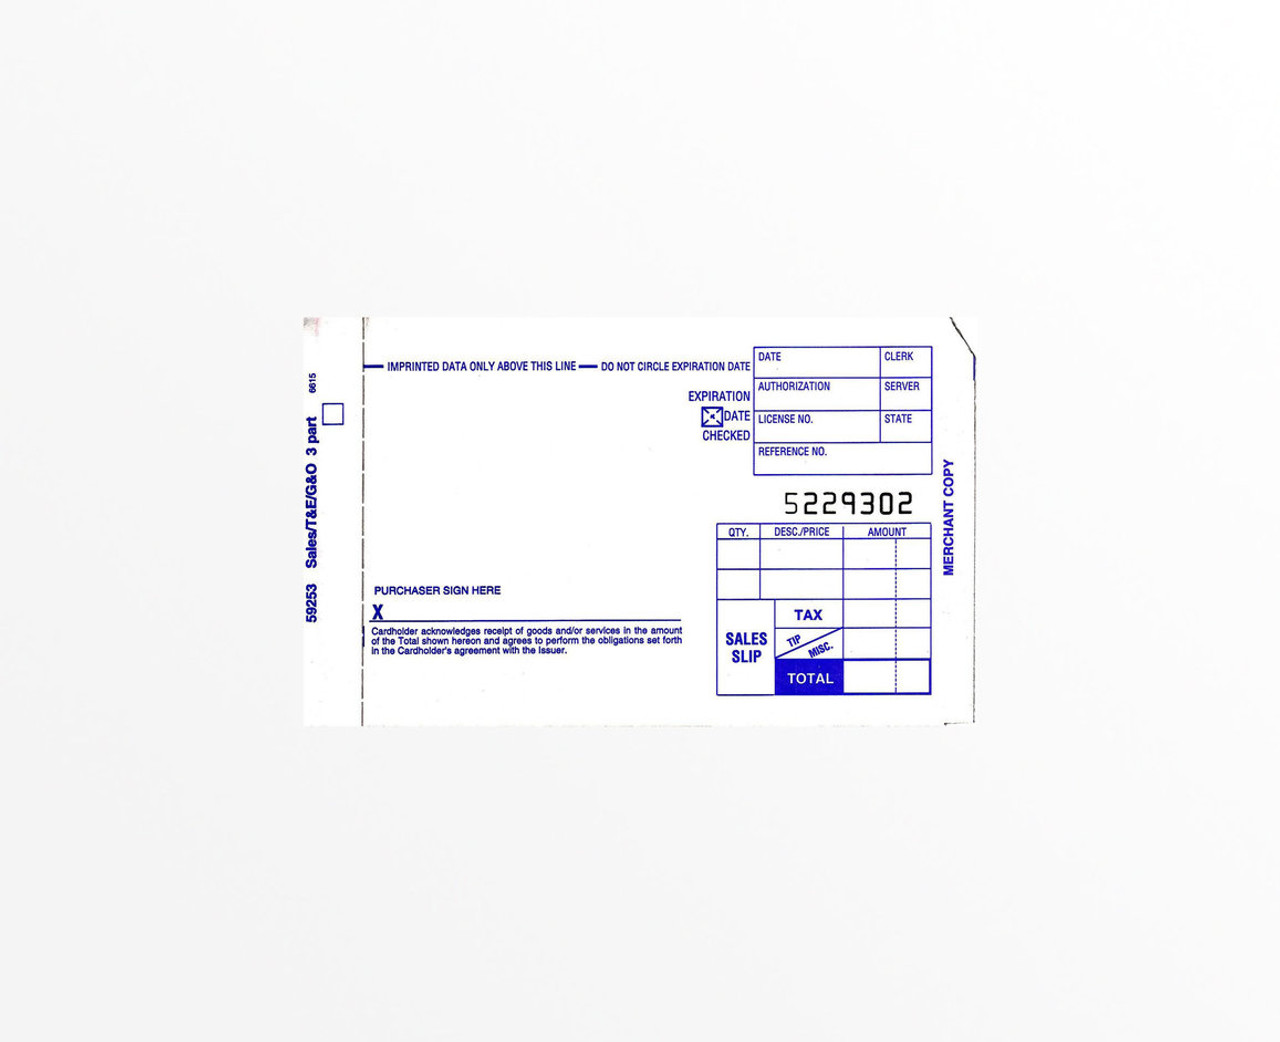 Credit Card Imprinter Slips